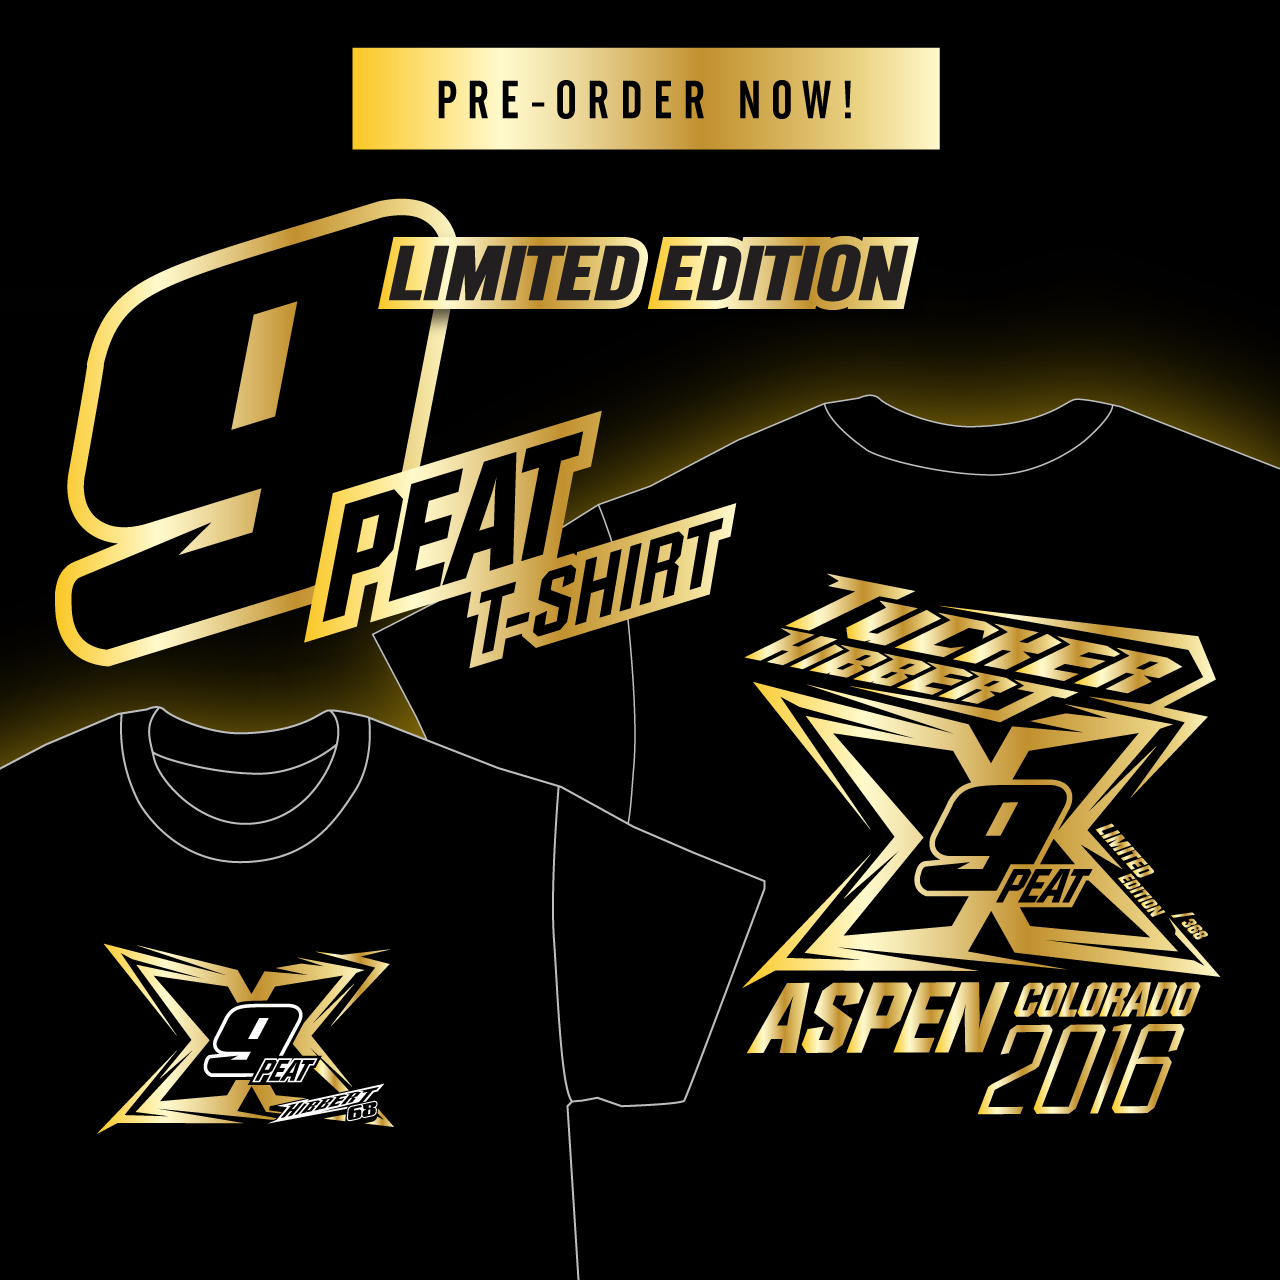 Pre-Order Tucker's Limited Edition 9-PEAT Shirt